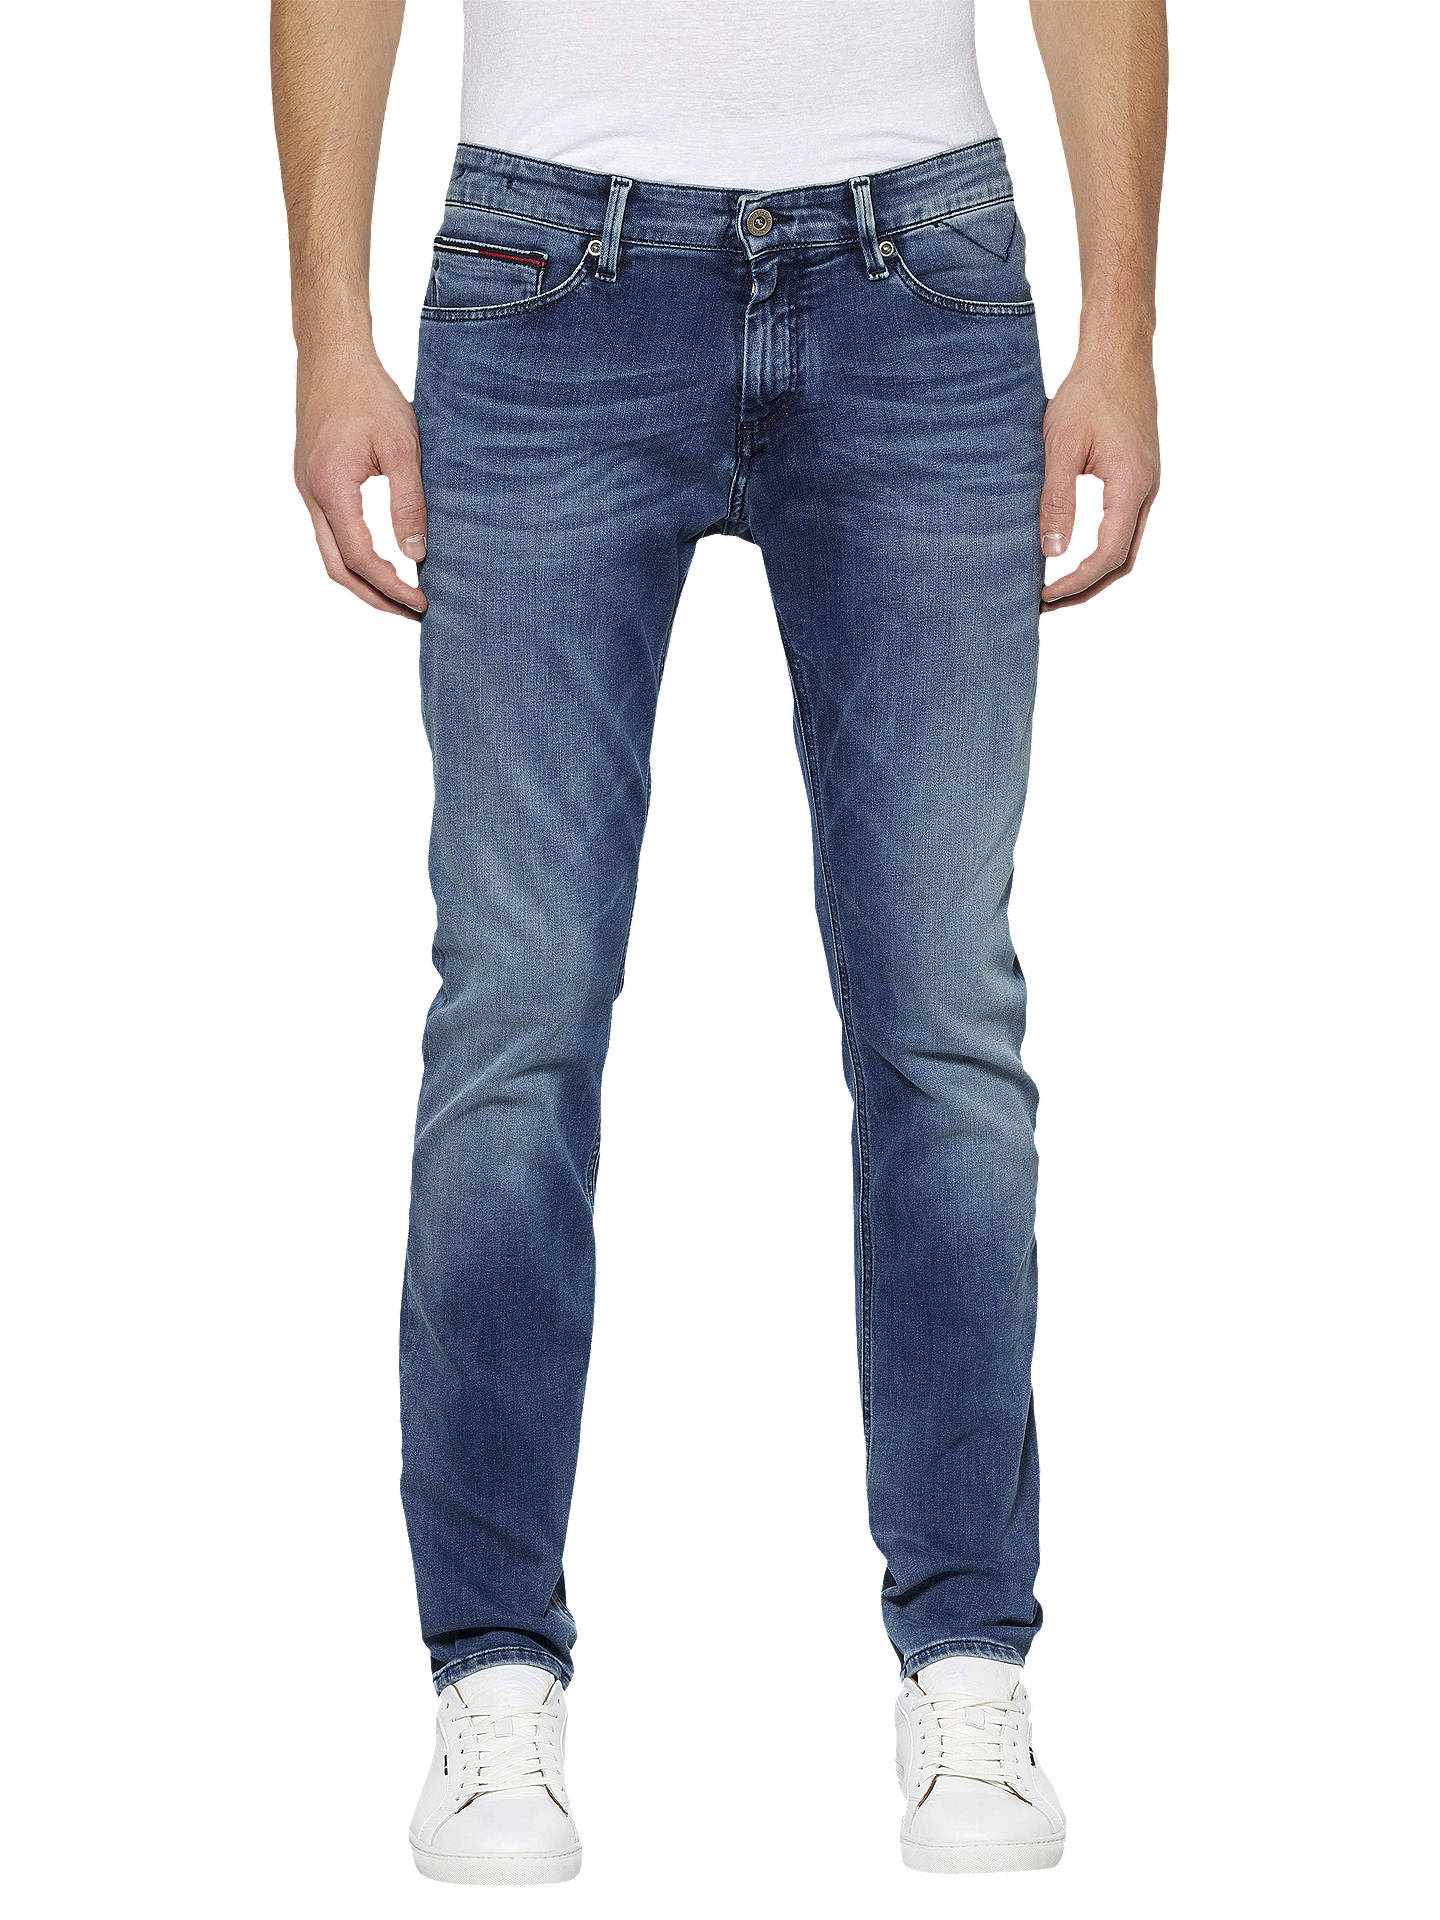 9f10bb15 Buy Tommy Jeans Dynamic Stretch Scanton Slim Fit Jeans, Faded Blue, 32S  Online at ...